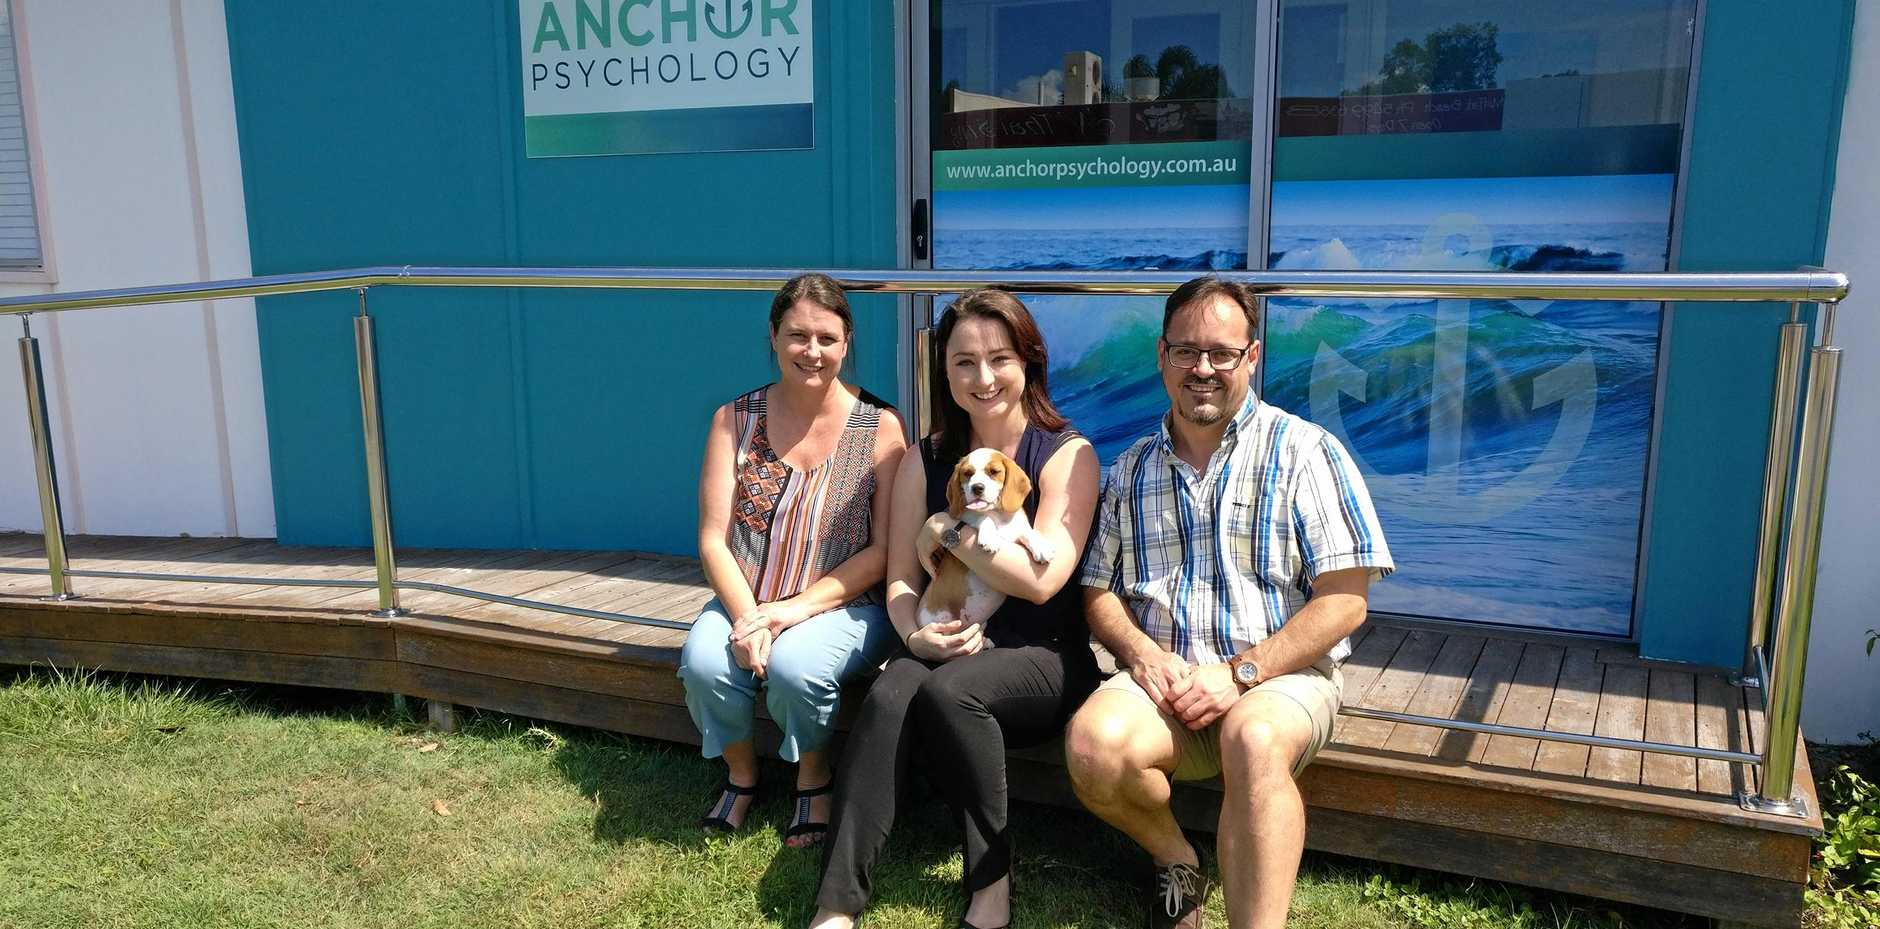 PROVIDING THERAPY: Fudge (centre) with Dr Zach De Beer (right) and two of his staff members.